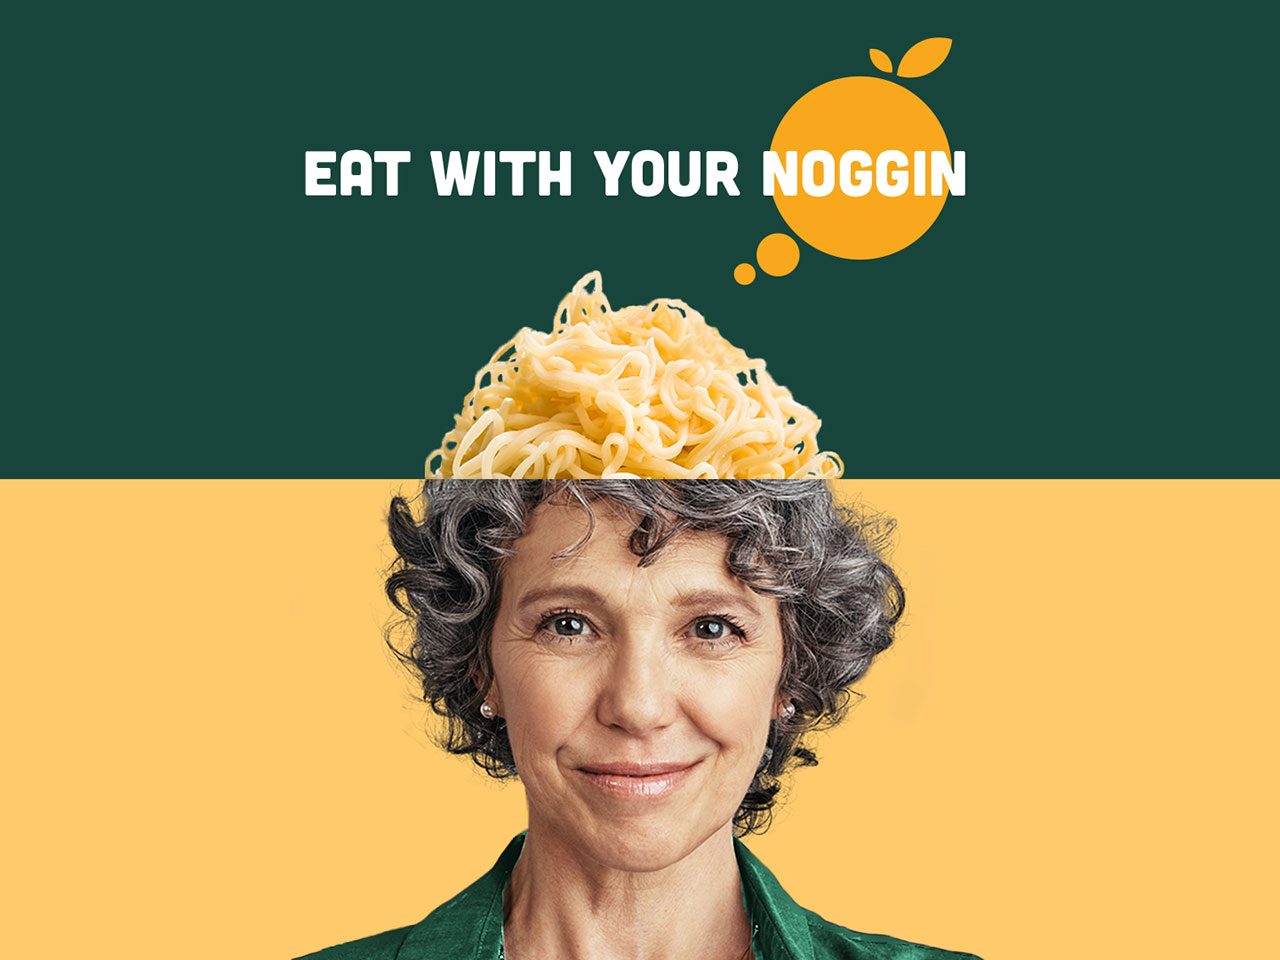 """Eat with your noggin"""